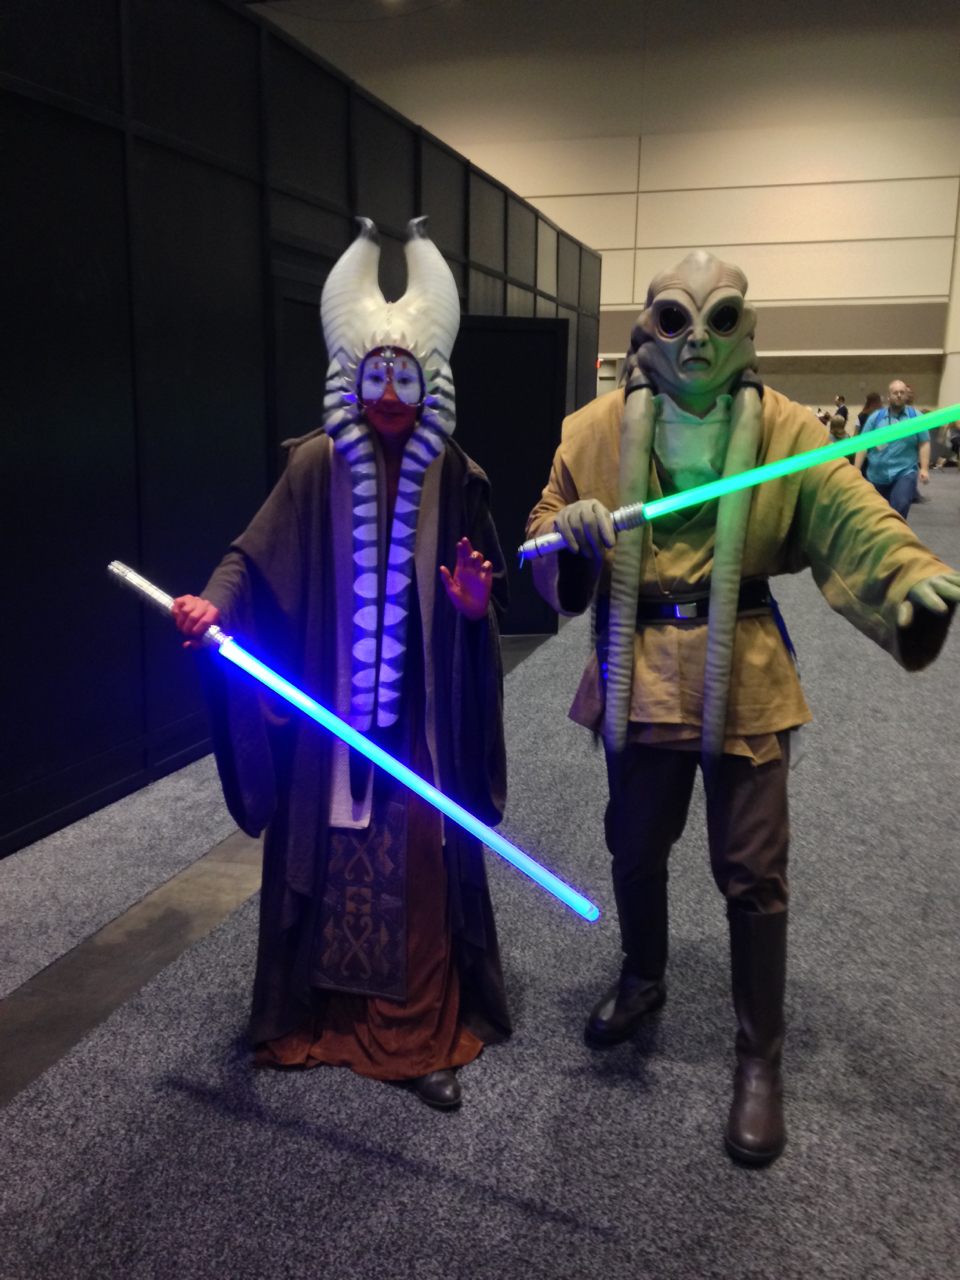 Star Wars Celebration Orlando 2017 (15)_800